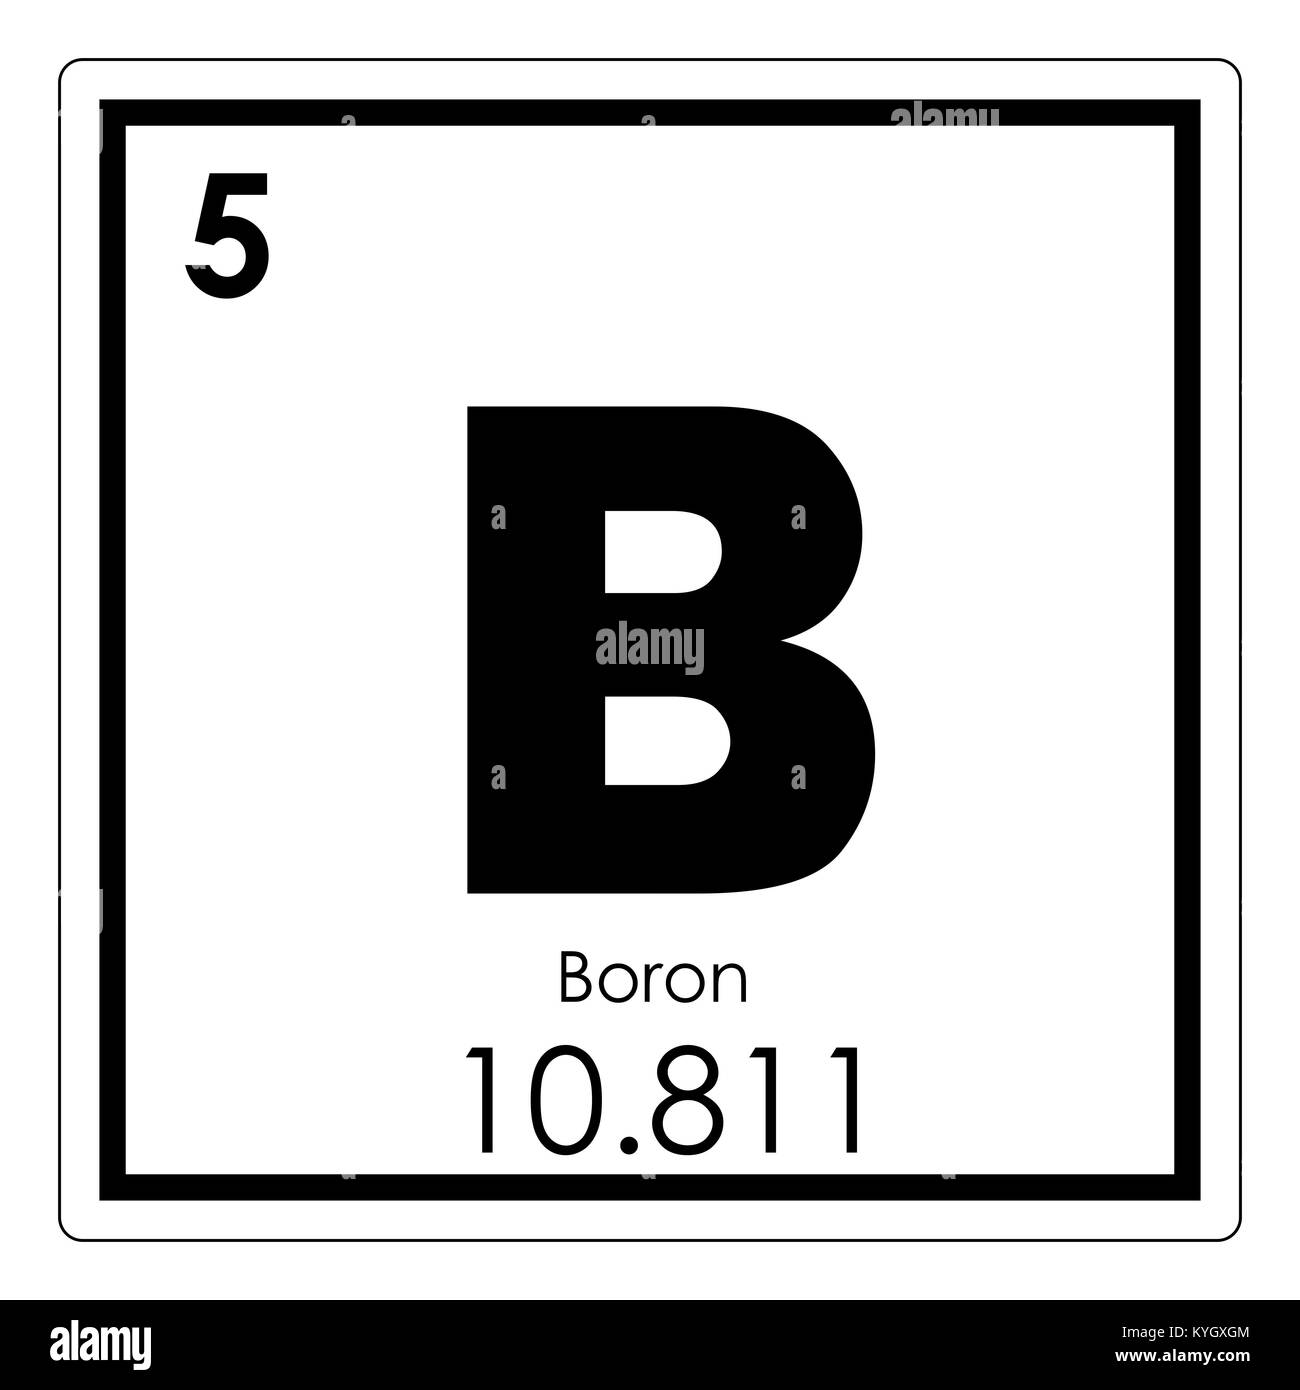 boron element stock photos boron element stock images alamy rh alamy com